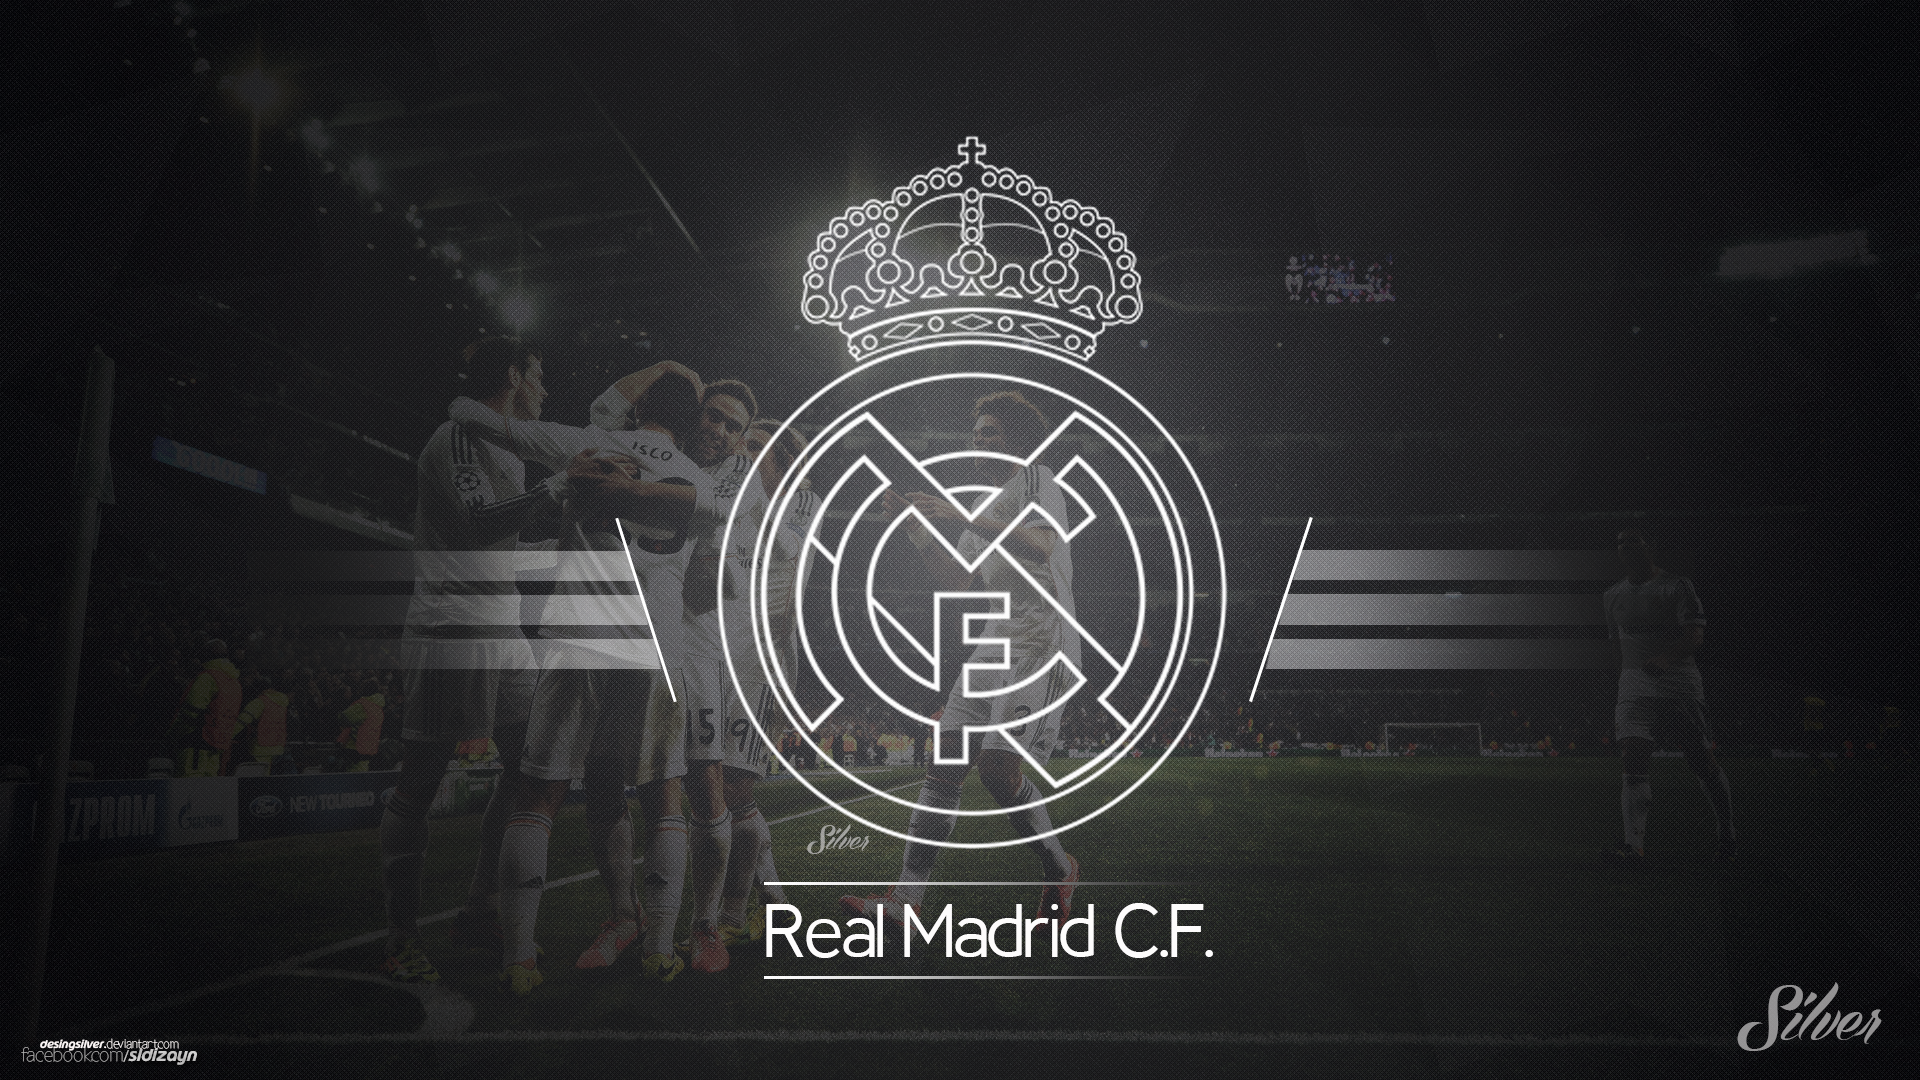 Full Hd P Real Madrid Wallpapers Hd Desktop Backgrounds Hd Wallpapers Real Madrid Wallpapers